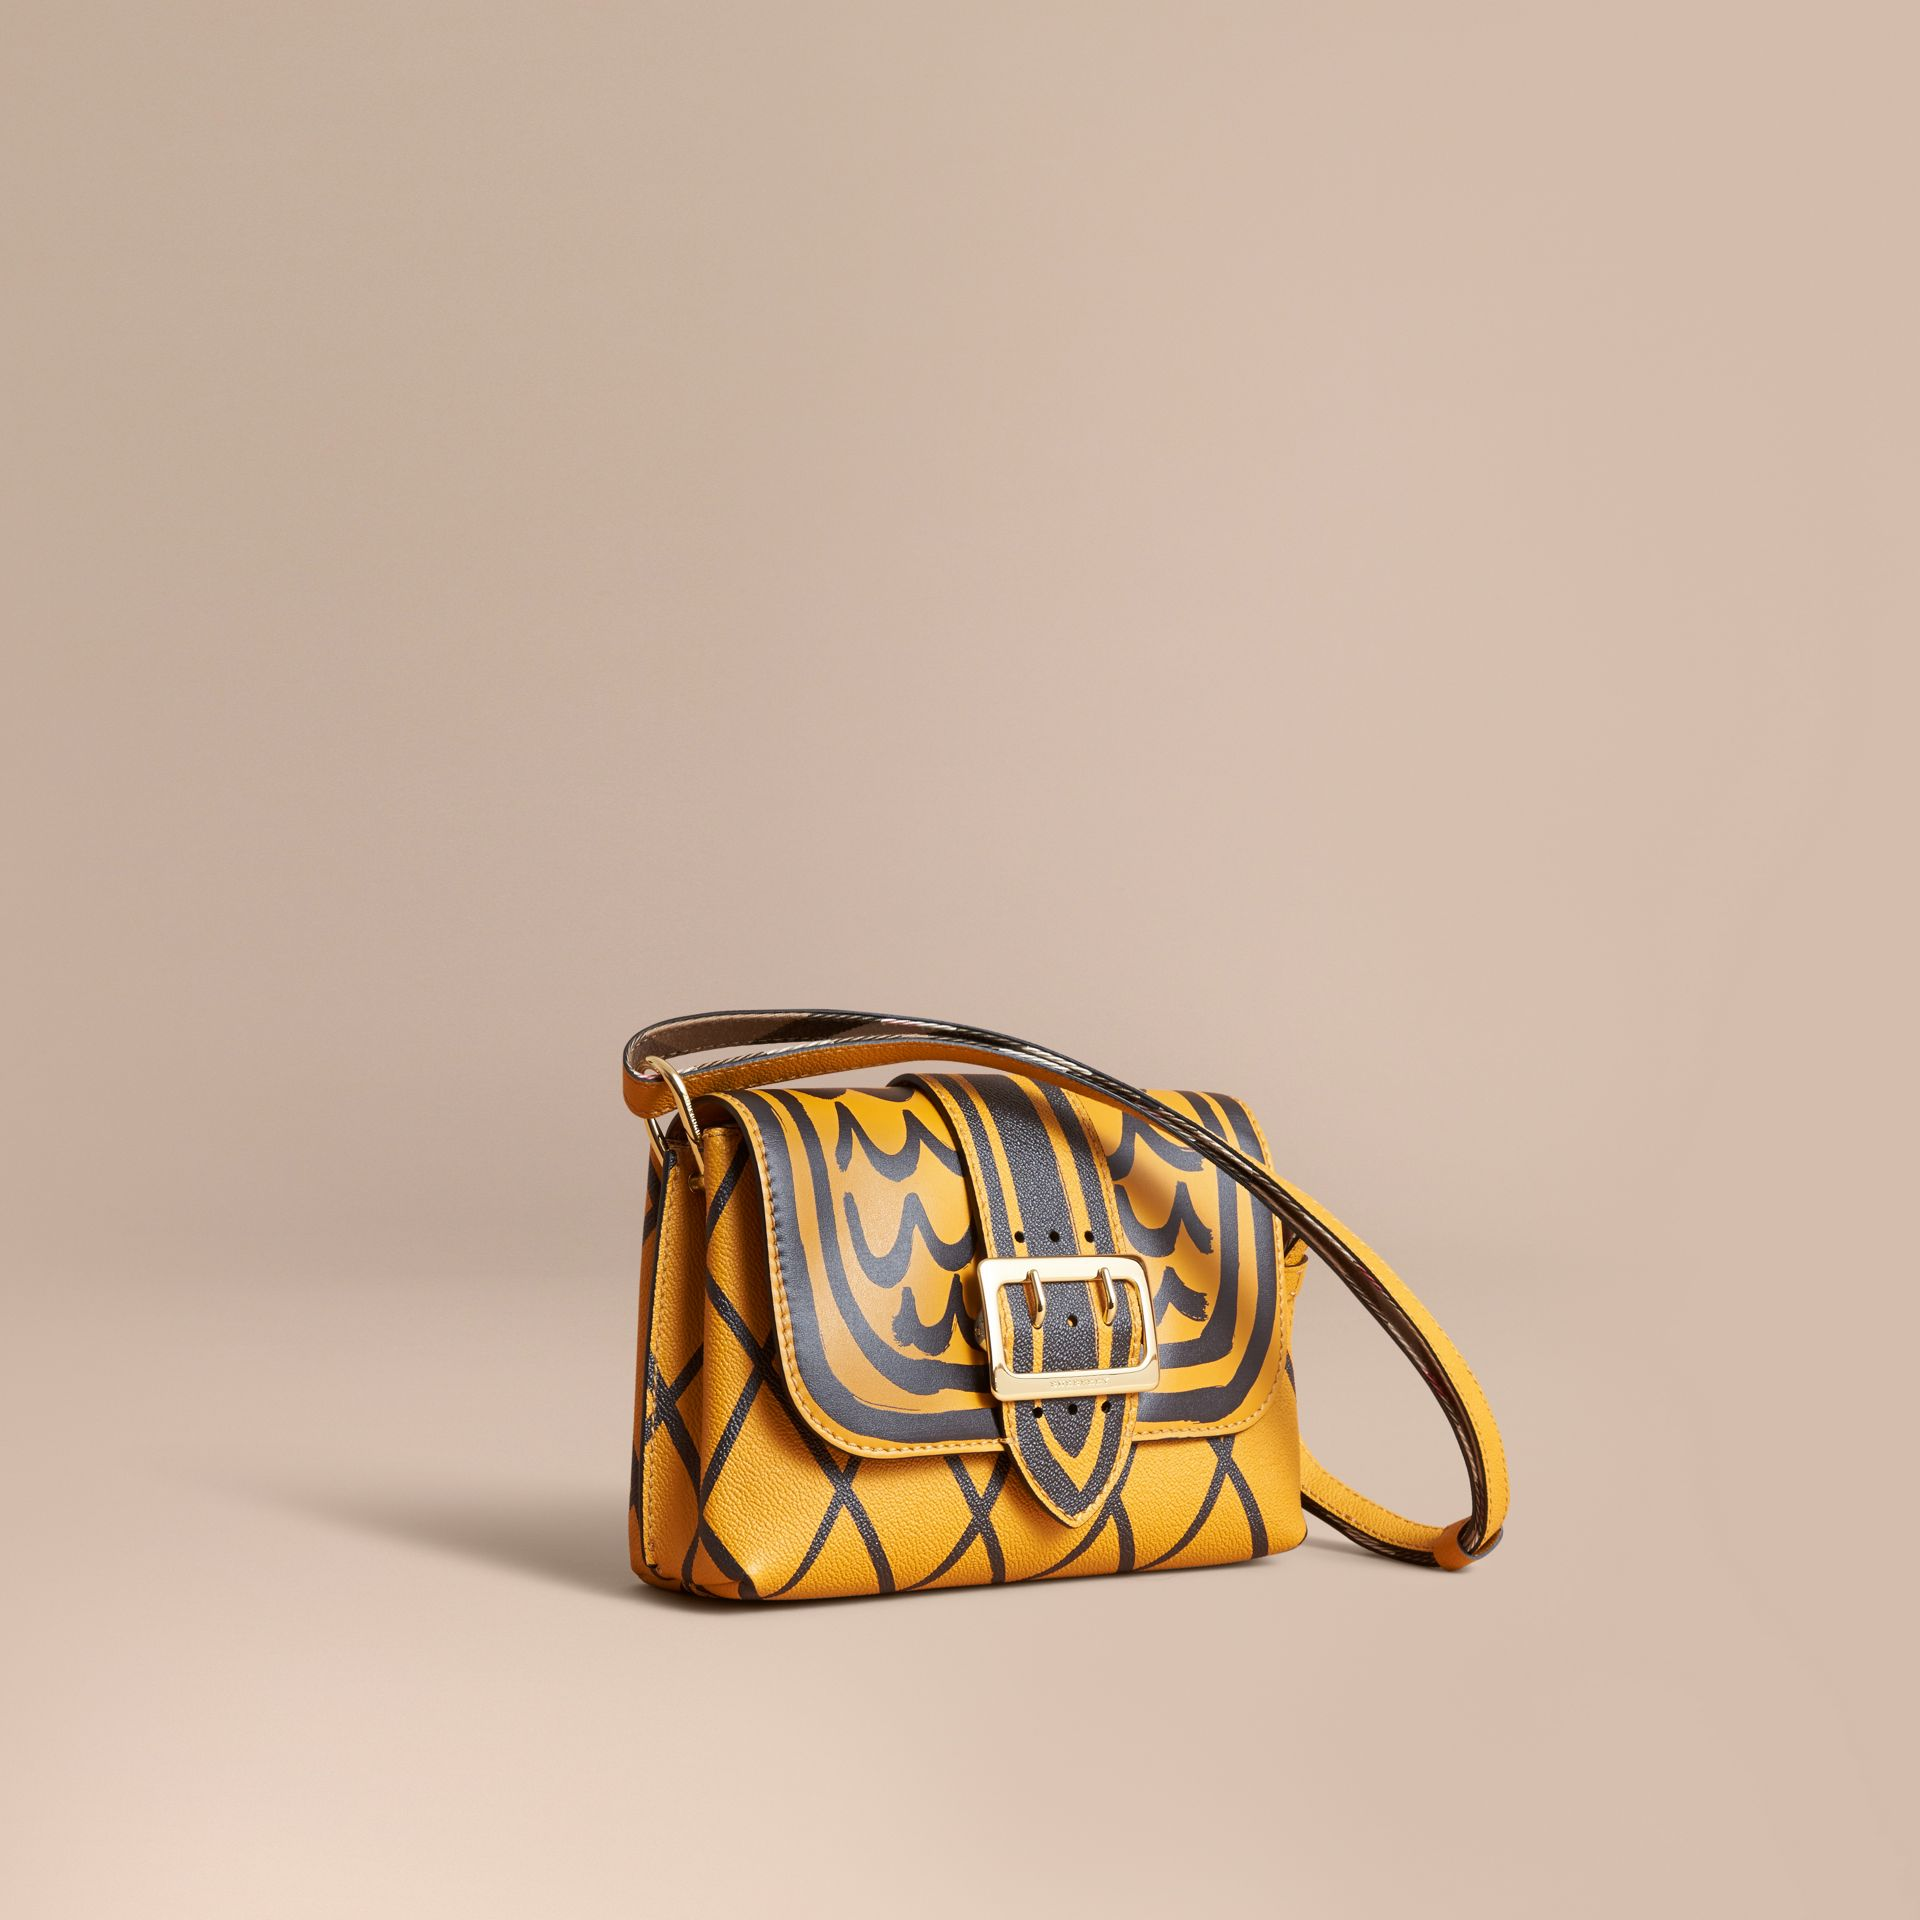 The Buckle Crossbody Bag in Trompe L'oeil Leather in Bright Straw - gallery image 1